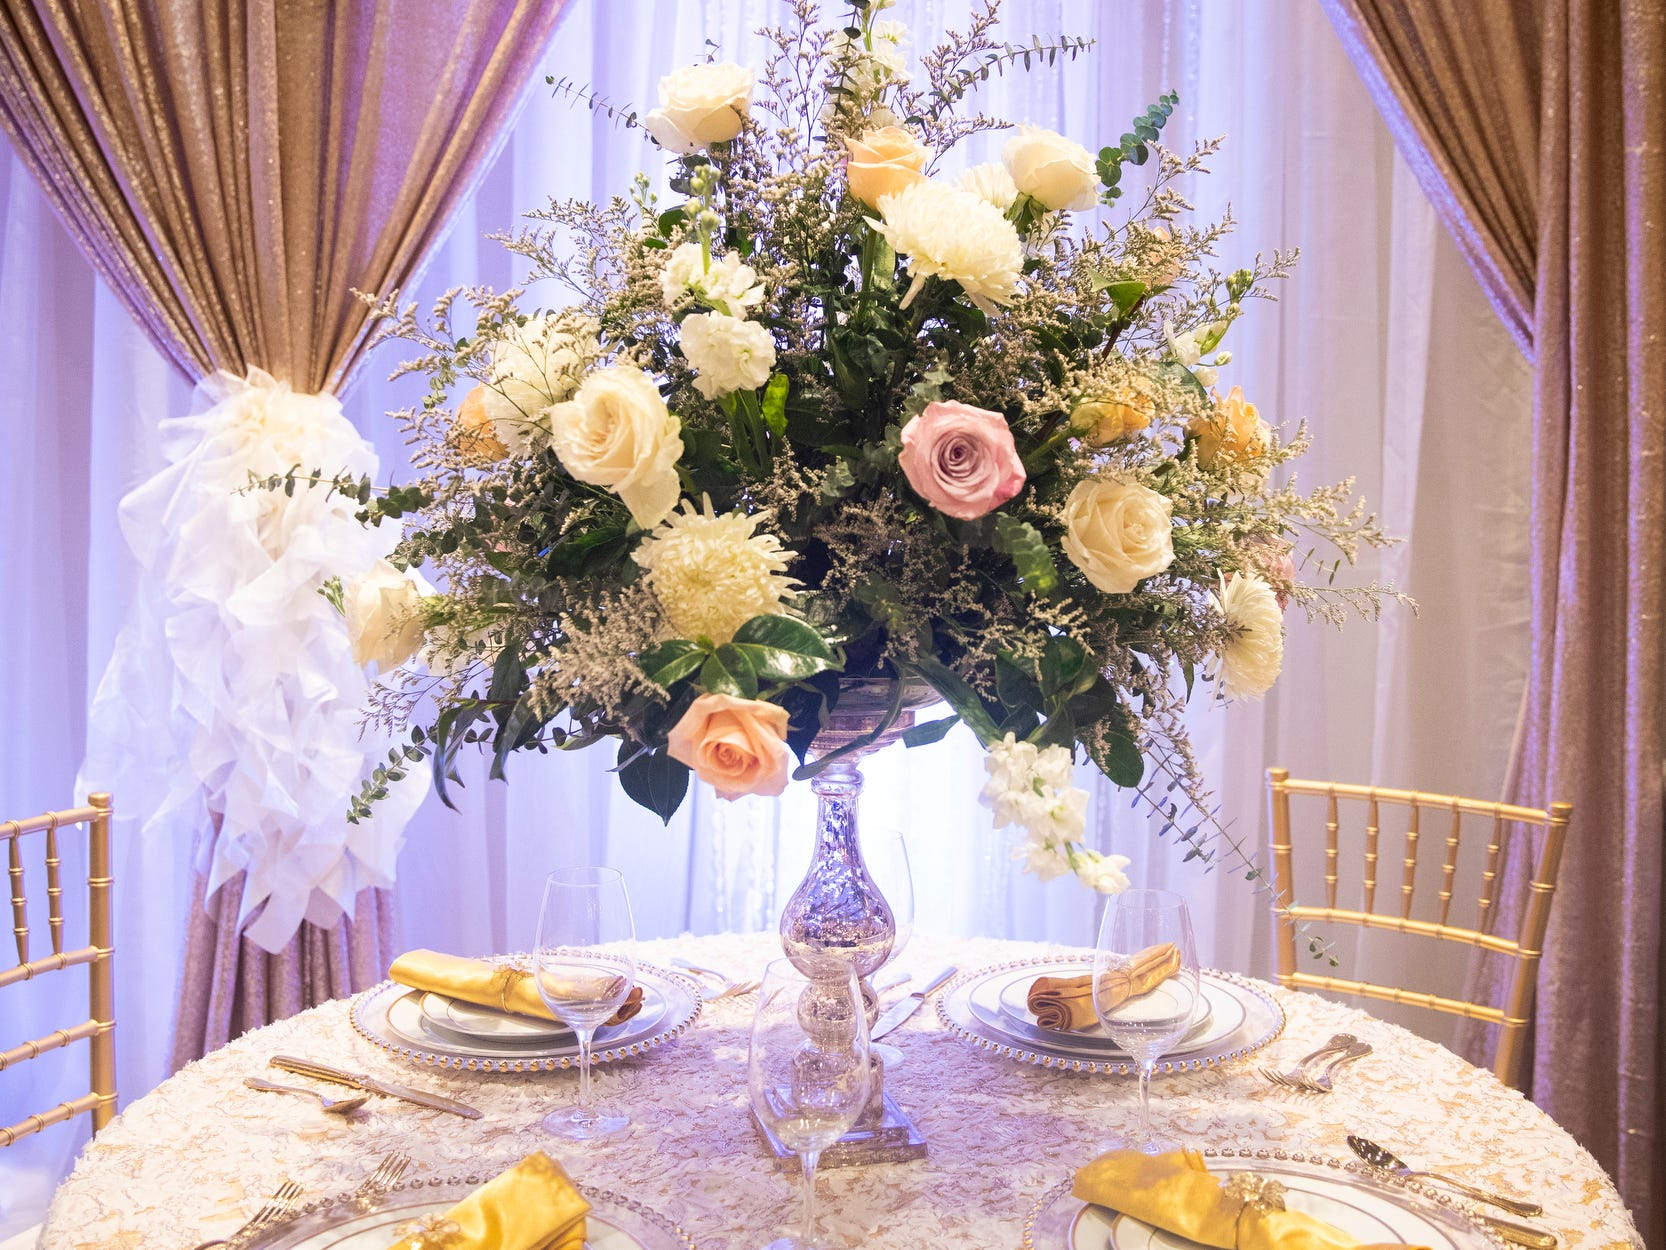 A&S Party Rental displayed various linens, table decorations, chairs and lighting at their booth at Wendy's Bridal Show at the Duke Energy Convention Center Saturday, January 5, 2019 in Downtown Cincinnati.